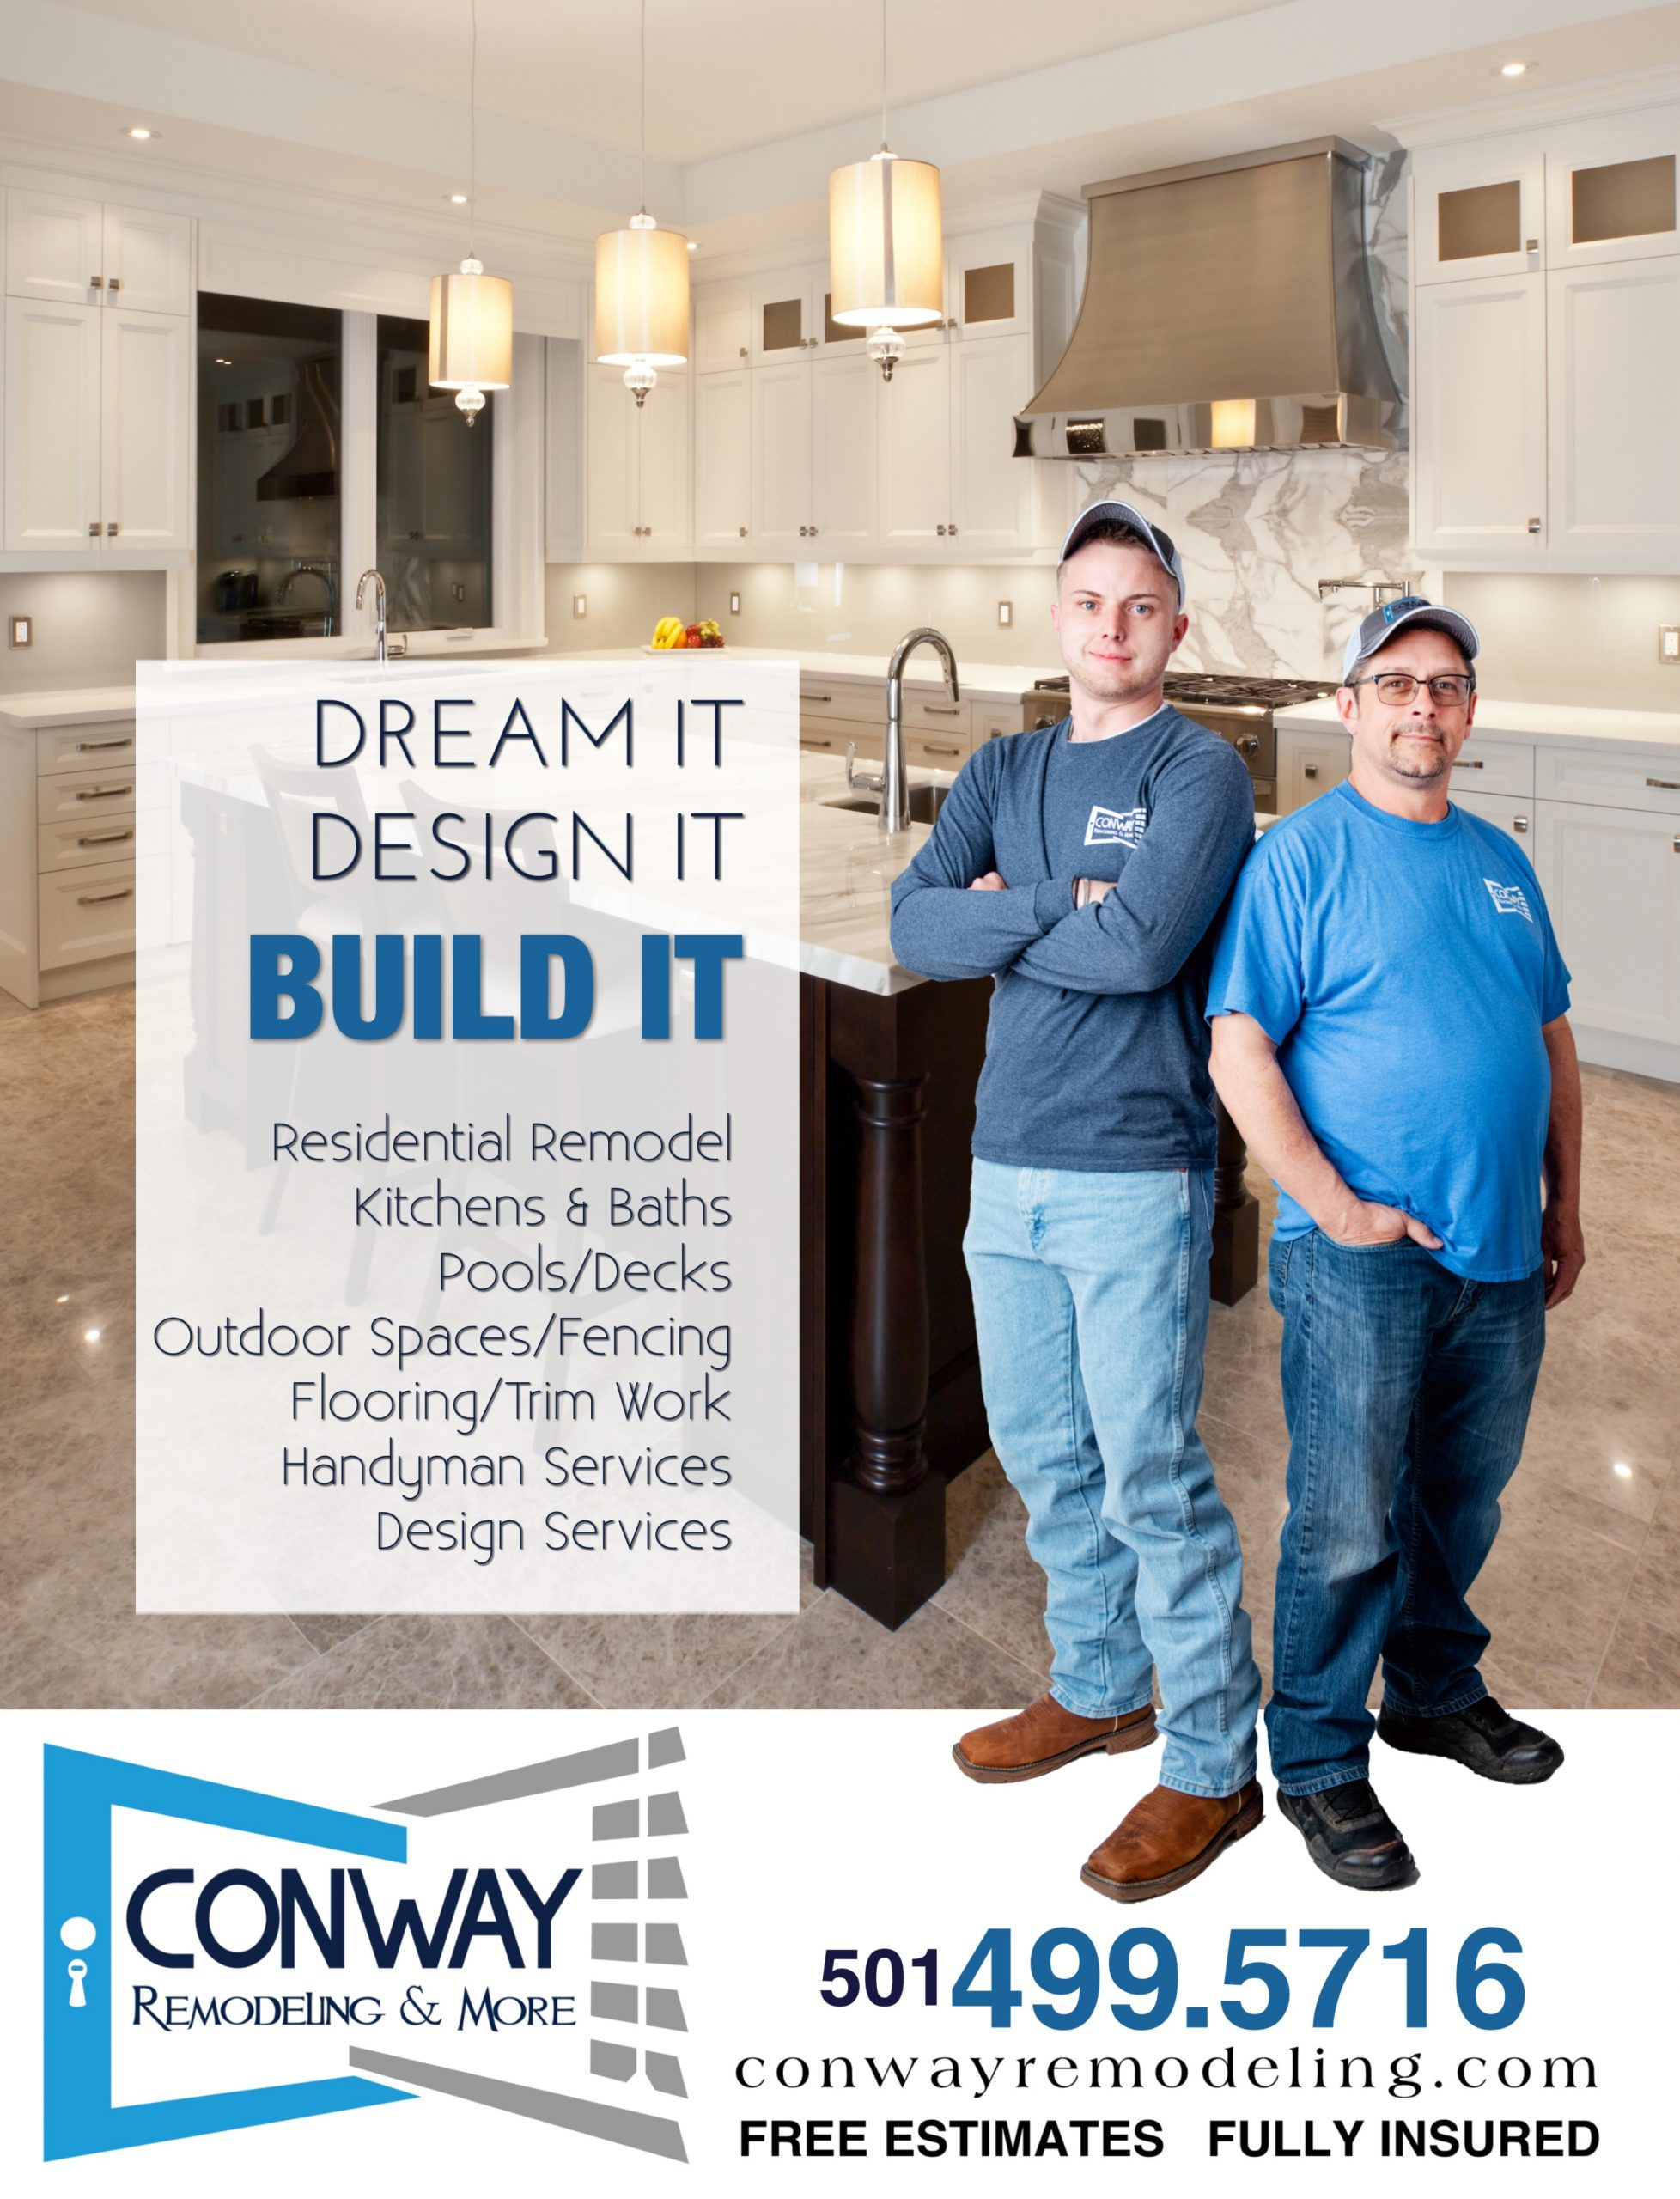 Johnny Miller and a worker standing in front of a kitchen with conpany logo and phone number to call for services.